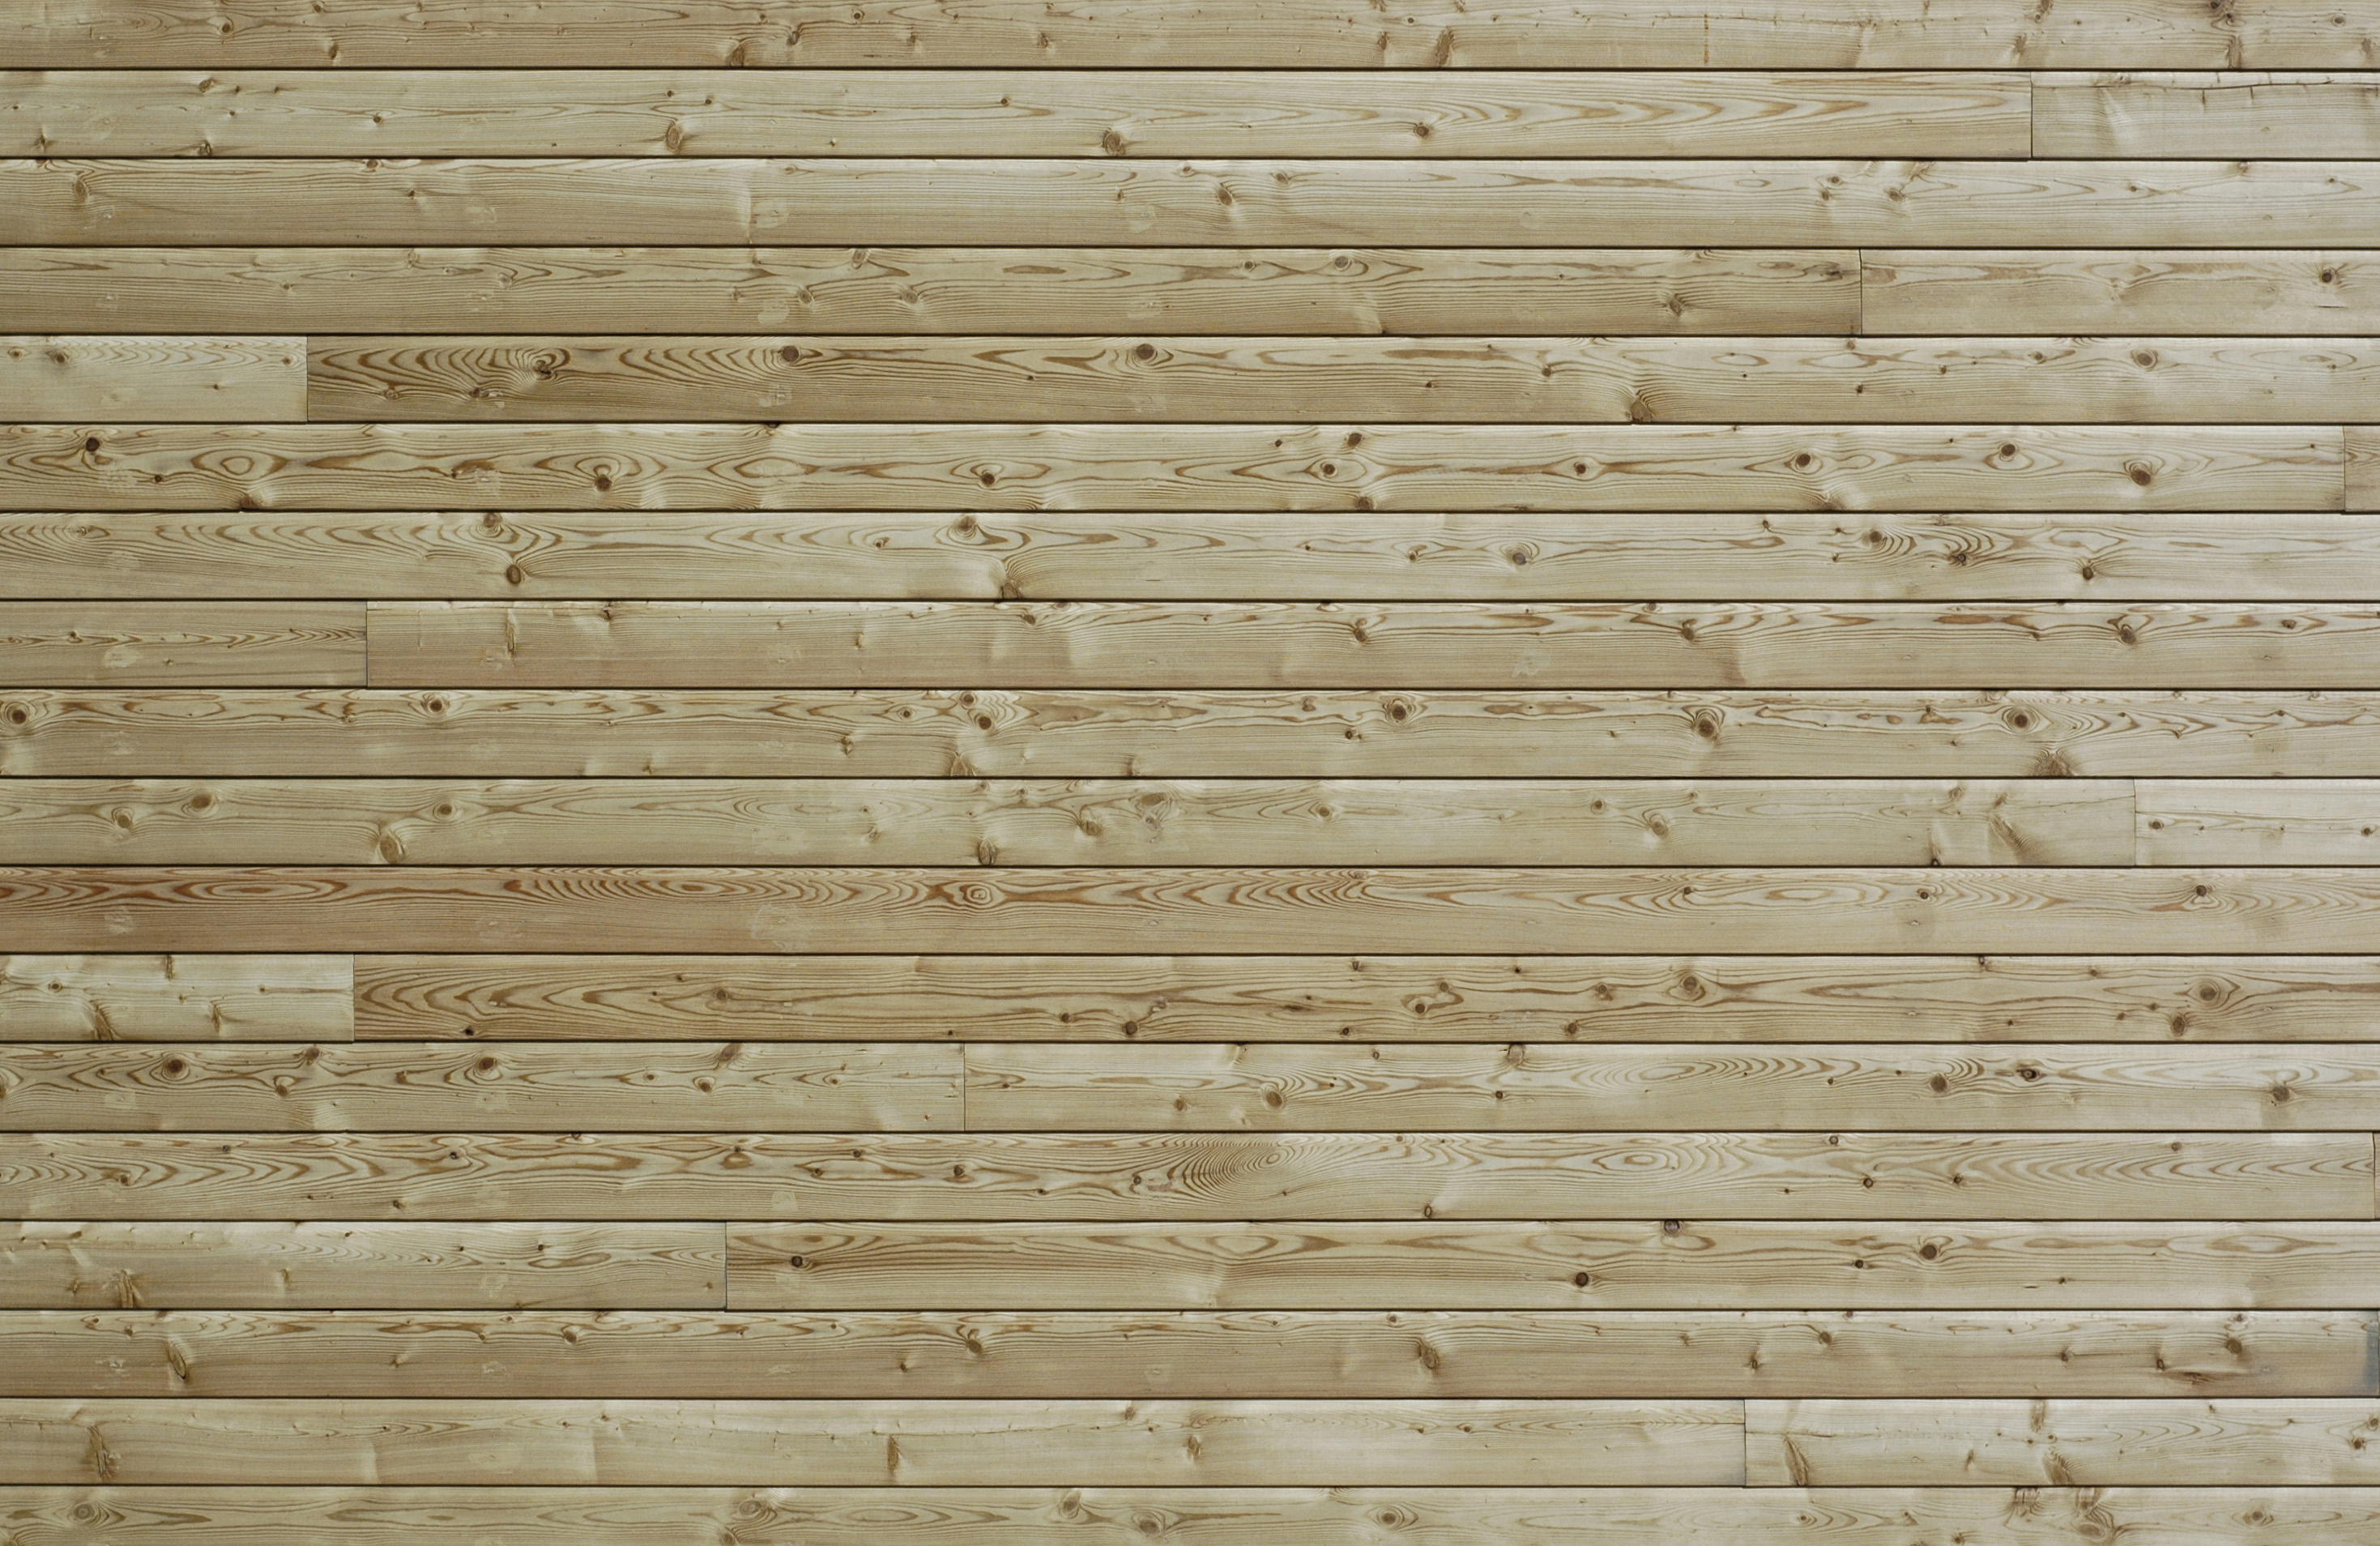 20 wood floor backgrounds for photographers images dark for Floor images